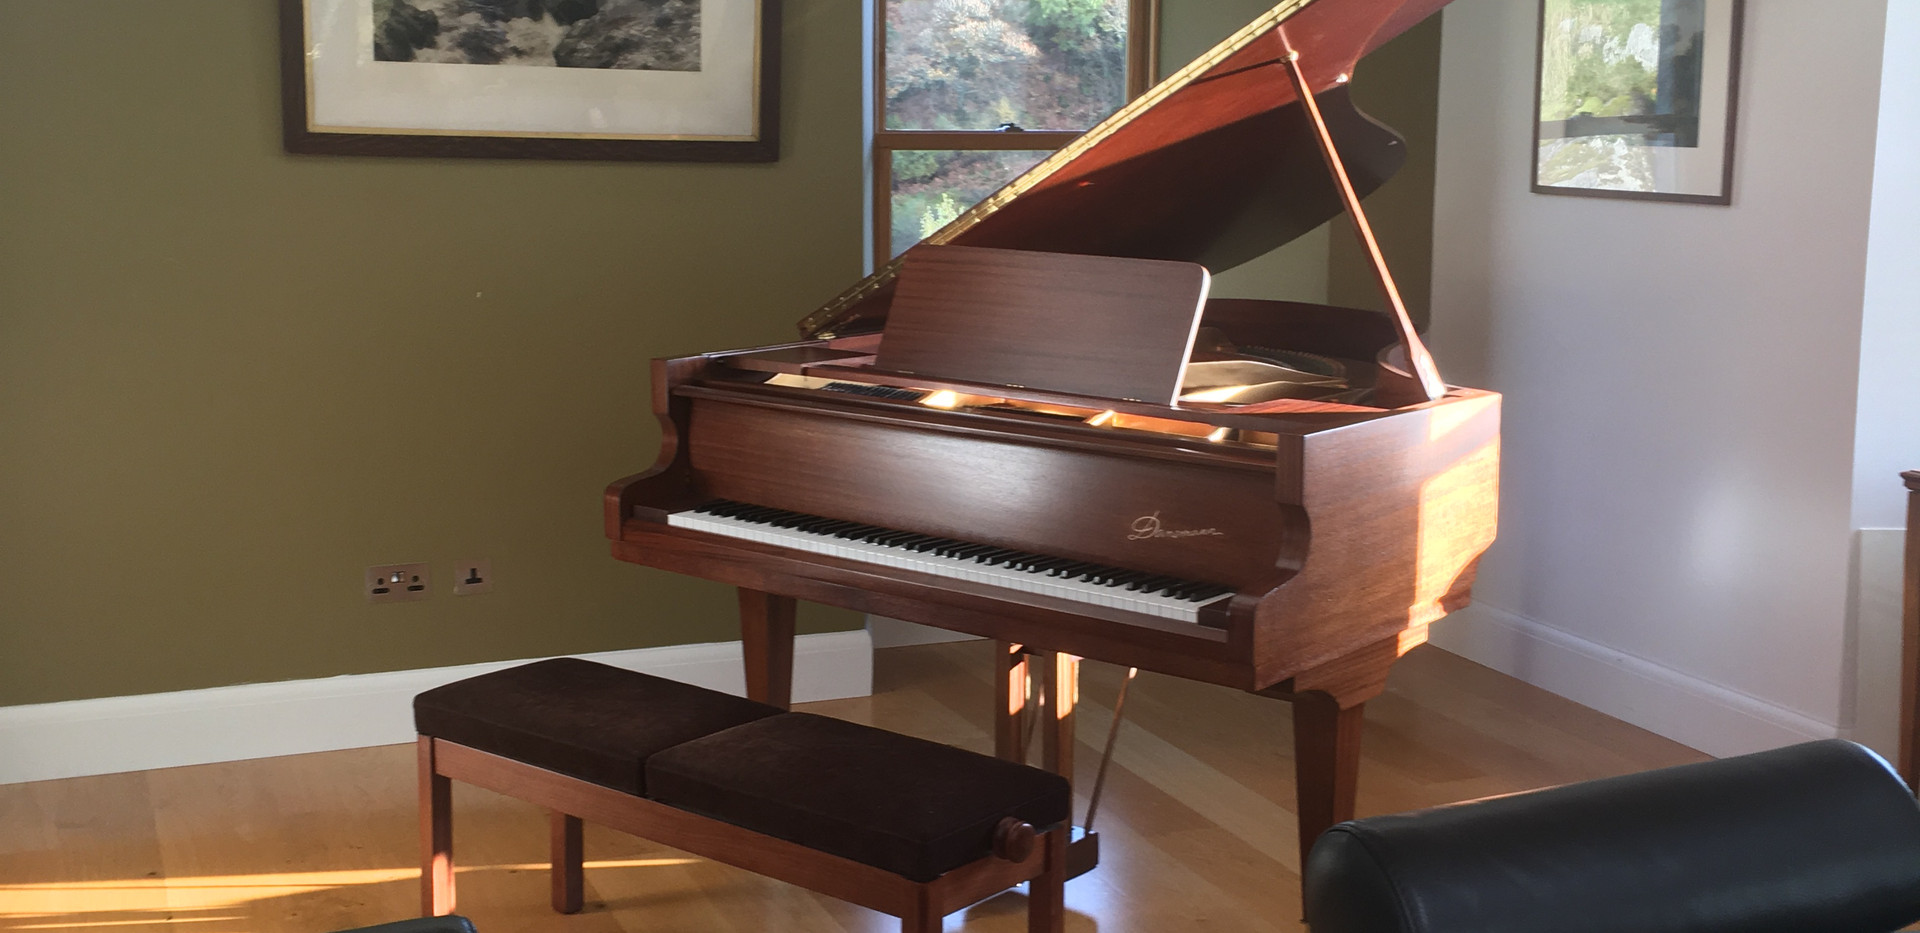 Danemann Grand piano.JPG